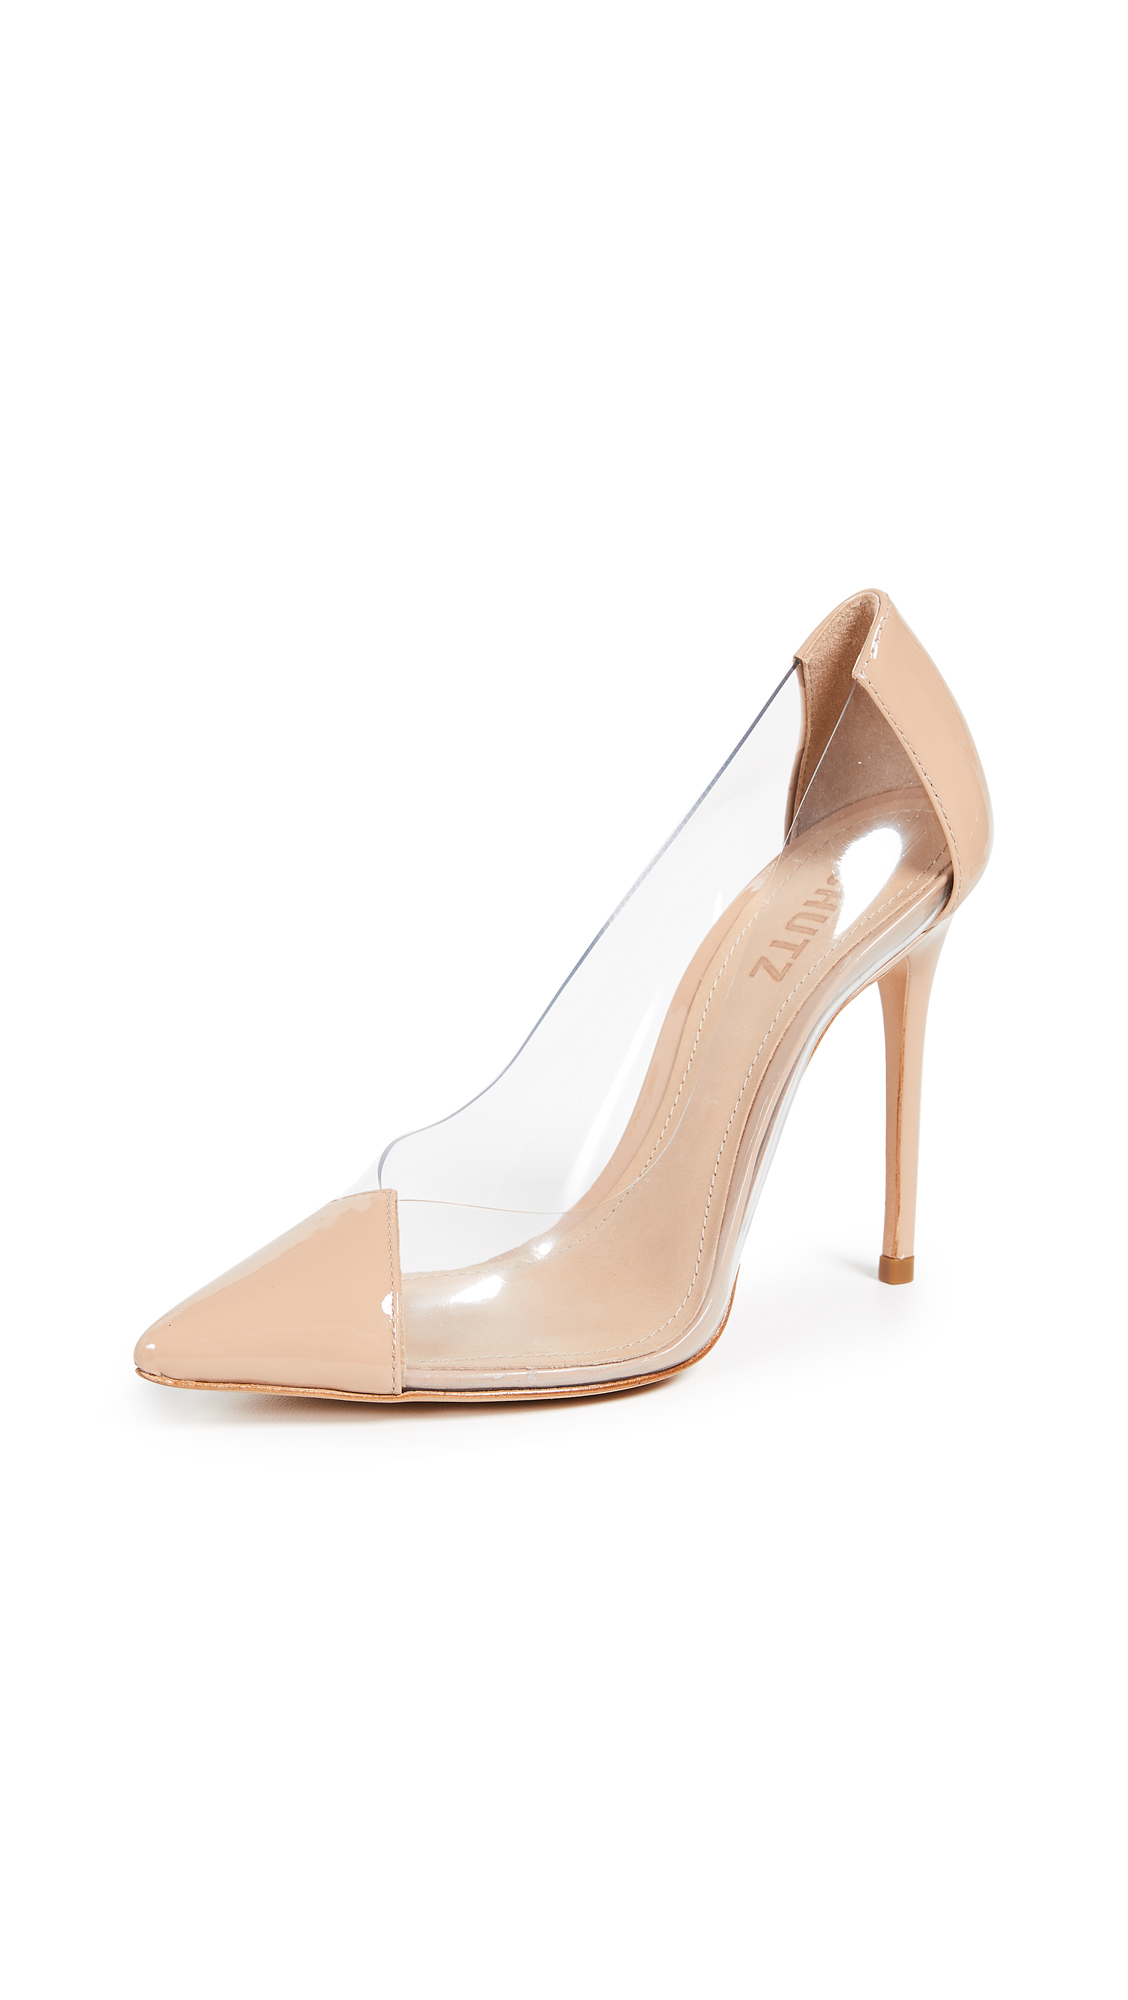 Schutz Cendi Point Toe Pumps - Honey Beige